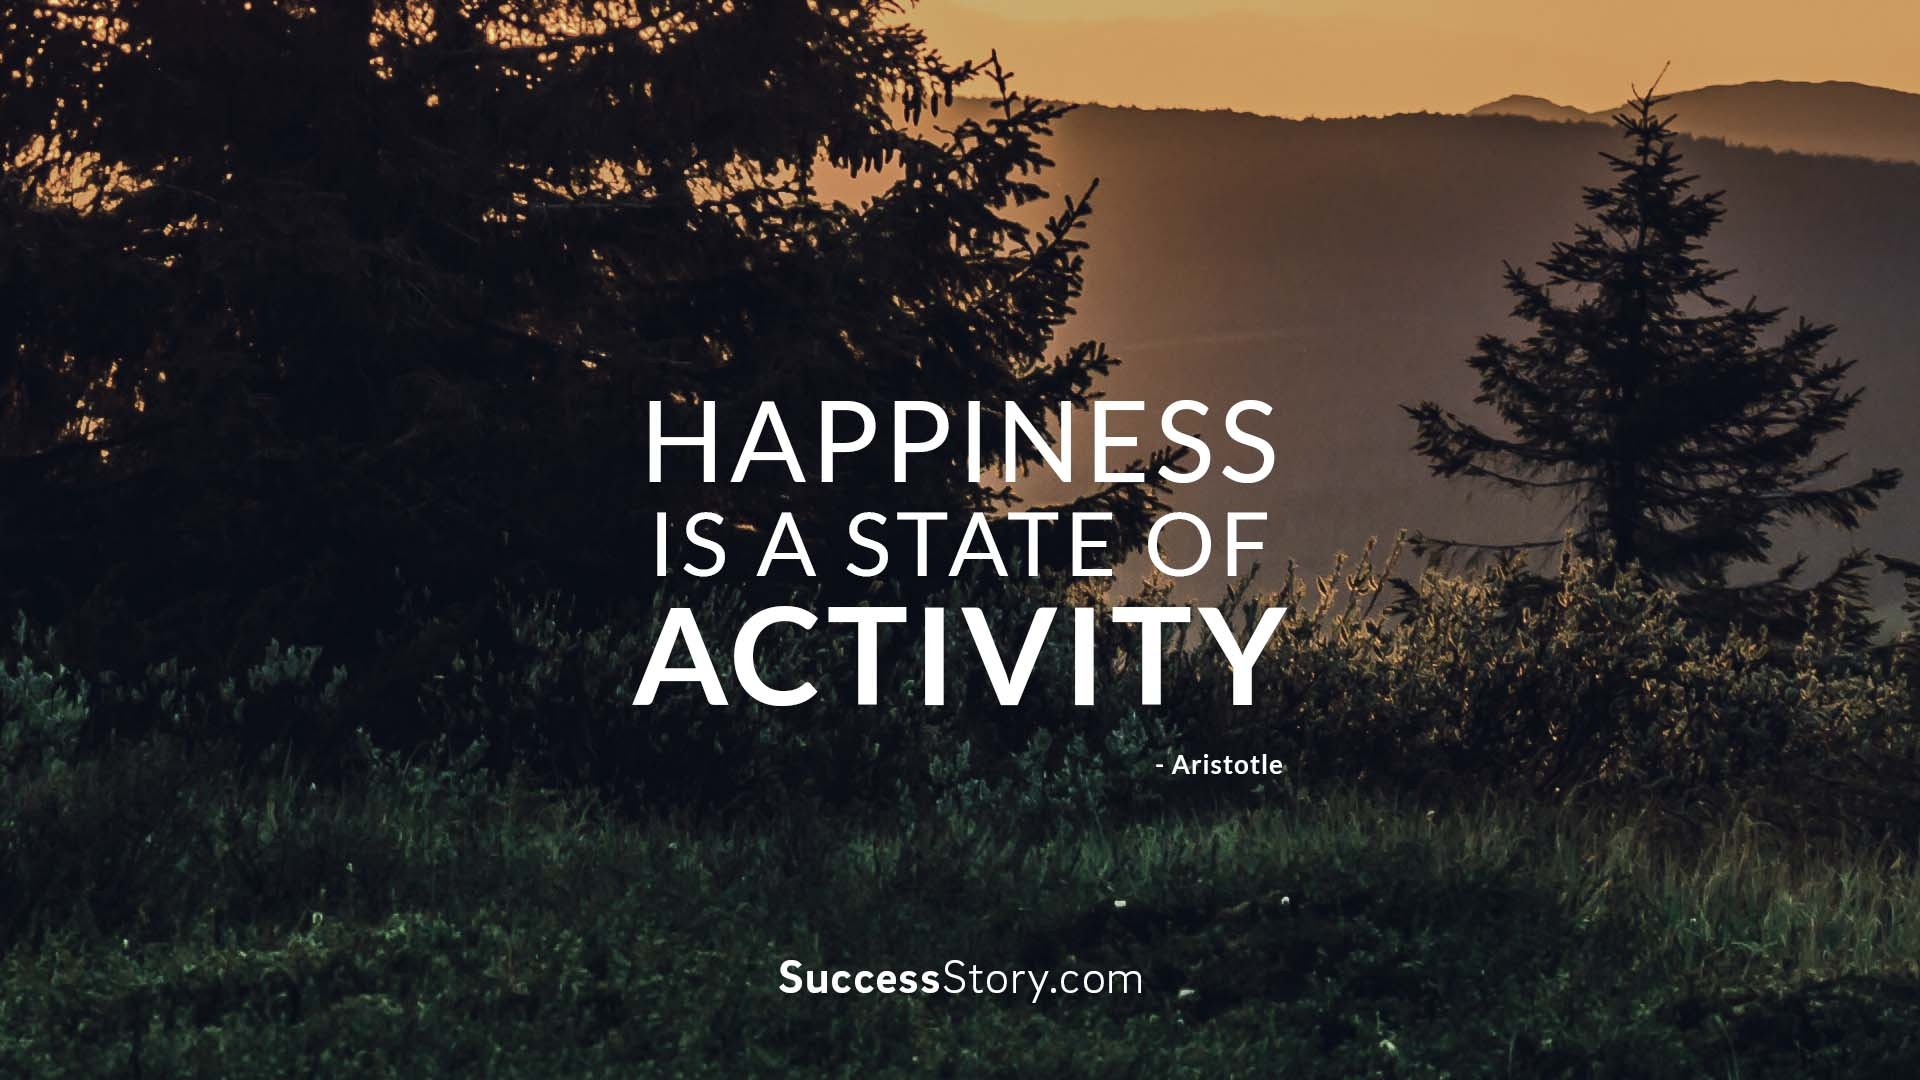 Happiness is a